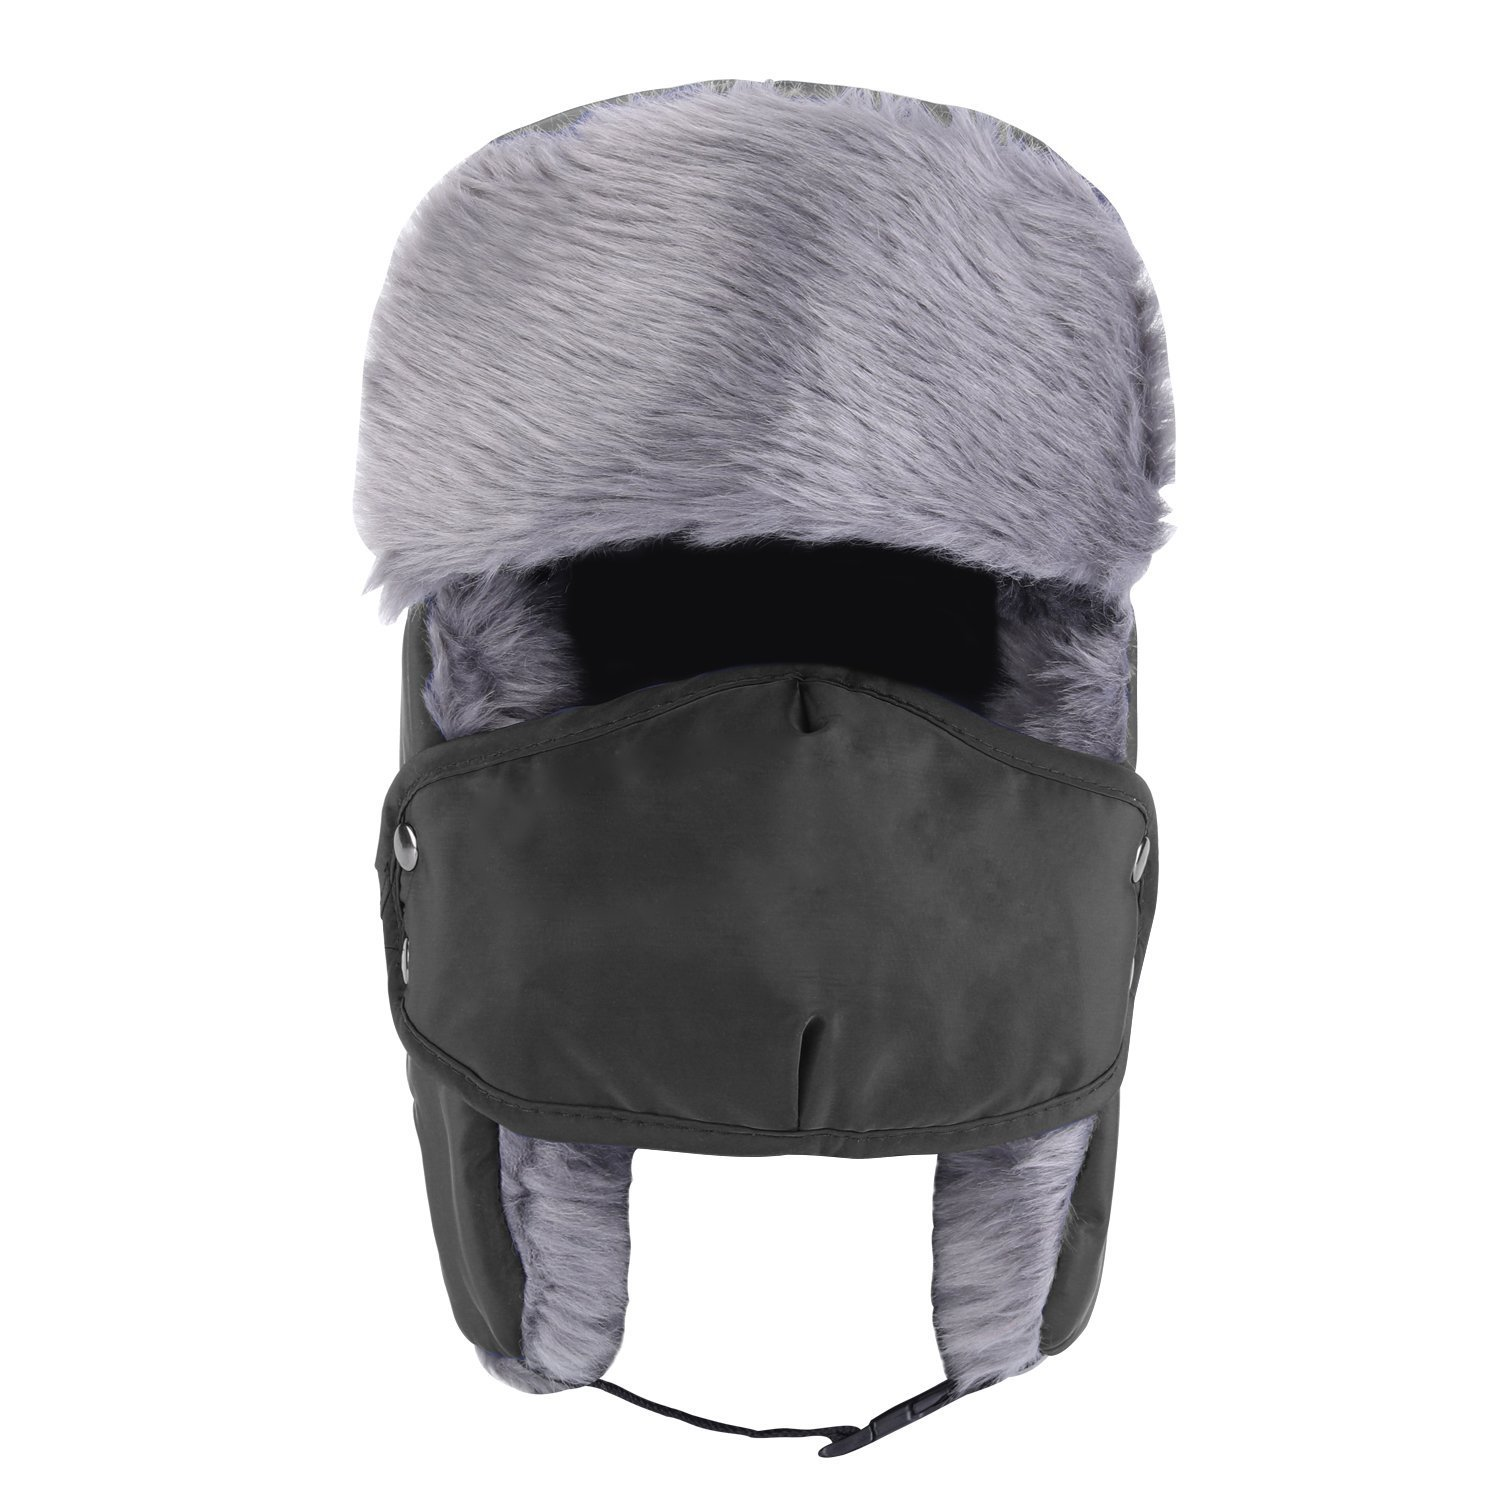 01e847f3a Amazon.com: M.E.R.A. Hippie Winter Trooper Trapper Hat, Hunting Hat ...